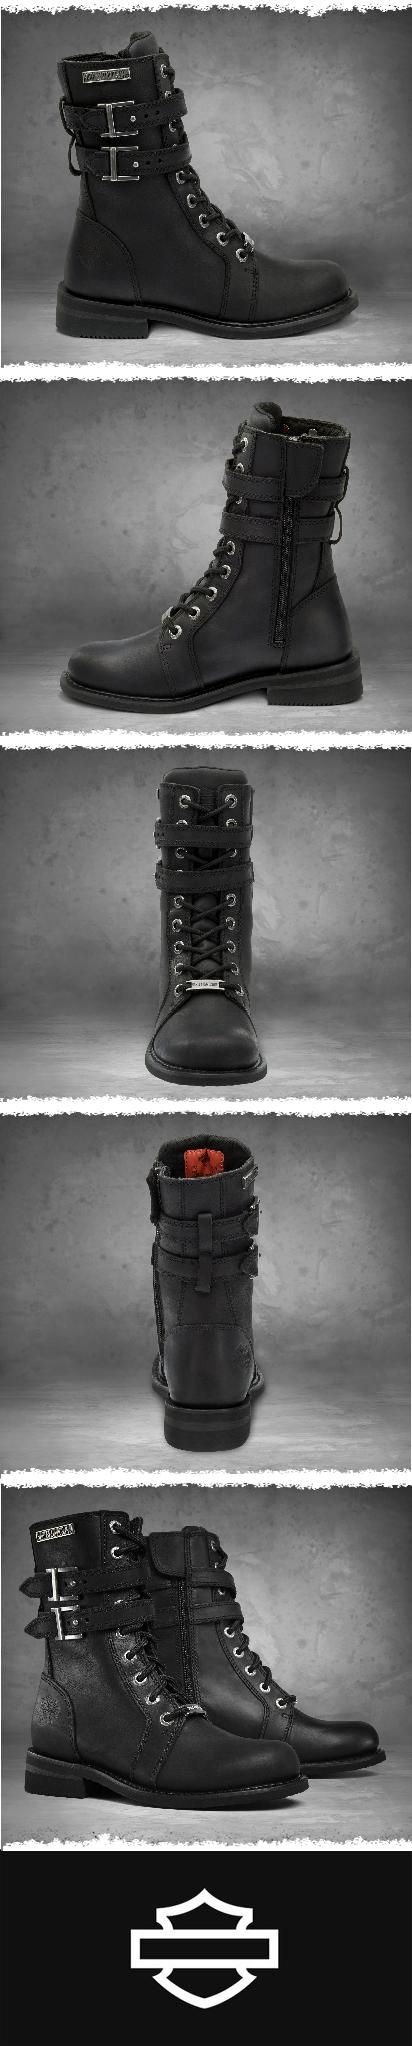 Authentic styling marks this lace-up boot. | Harley-Davidson Women's Bradbrook Performance Boots